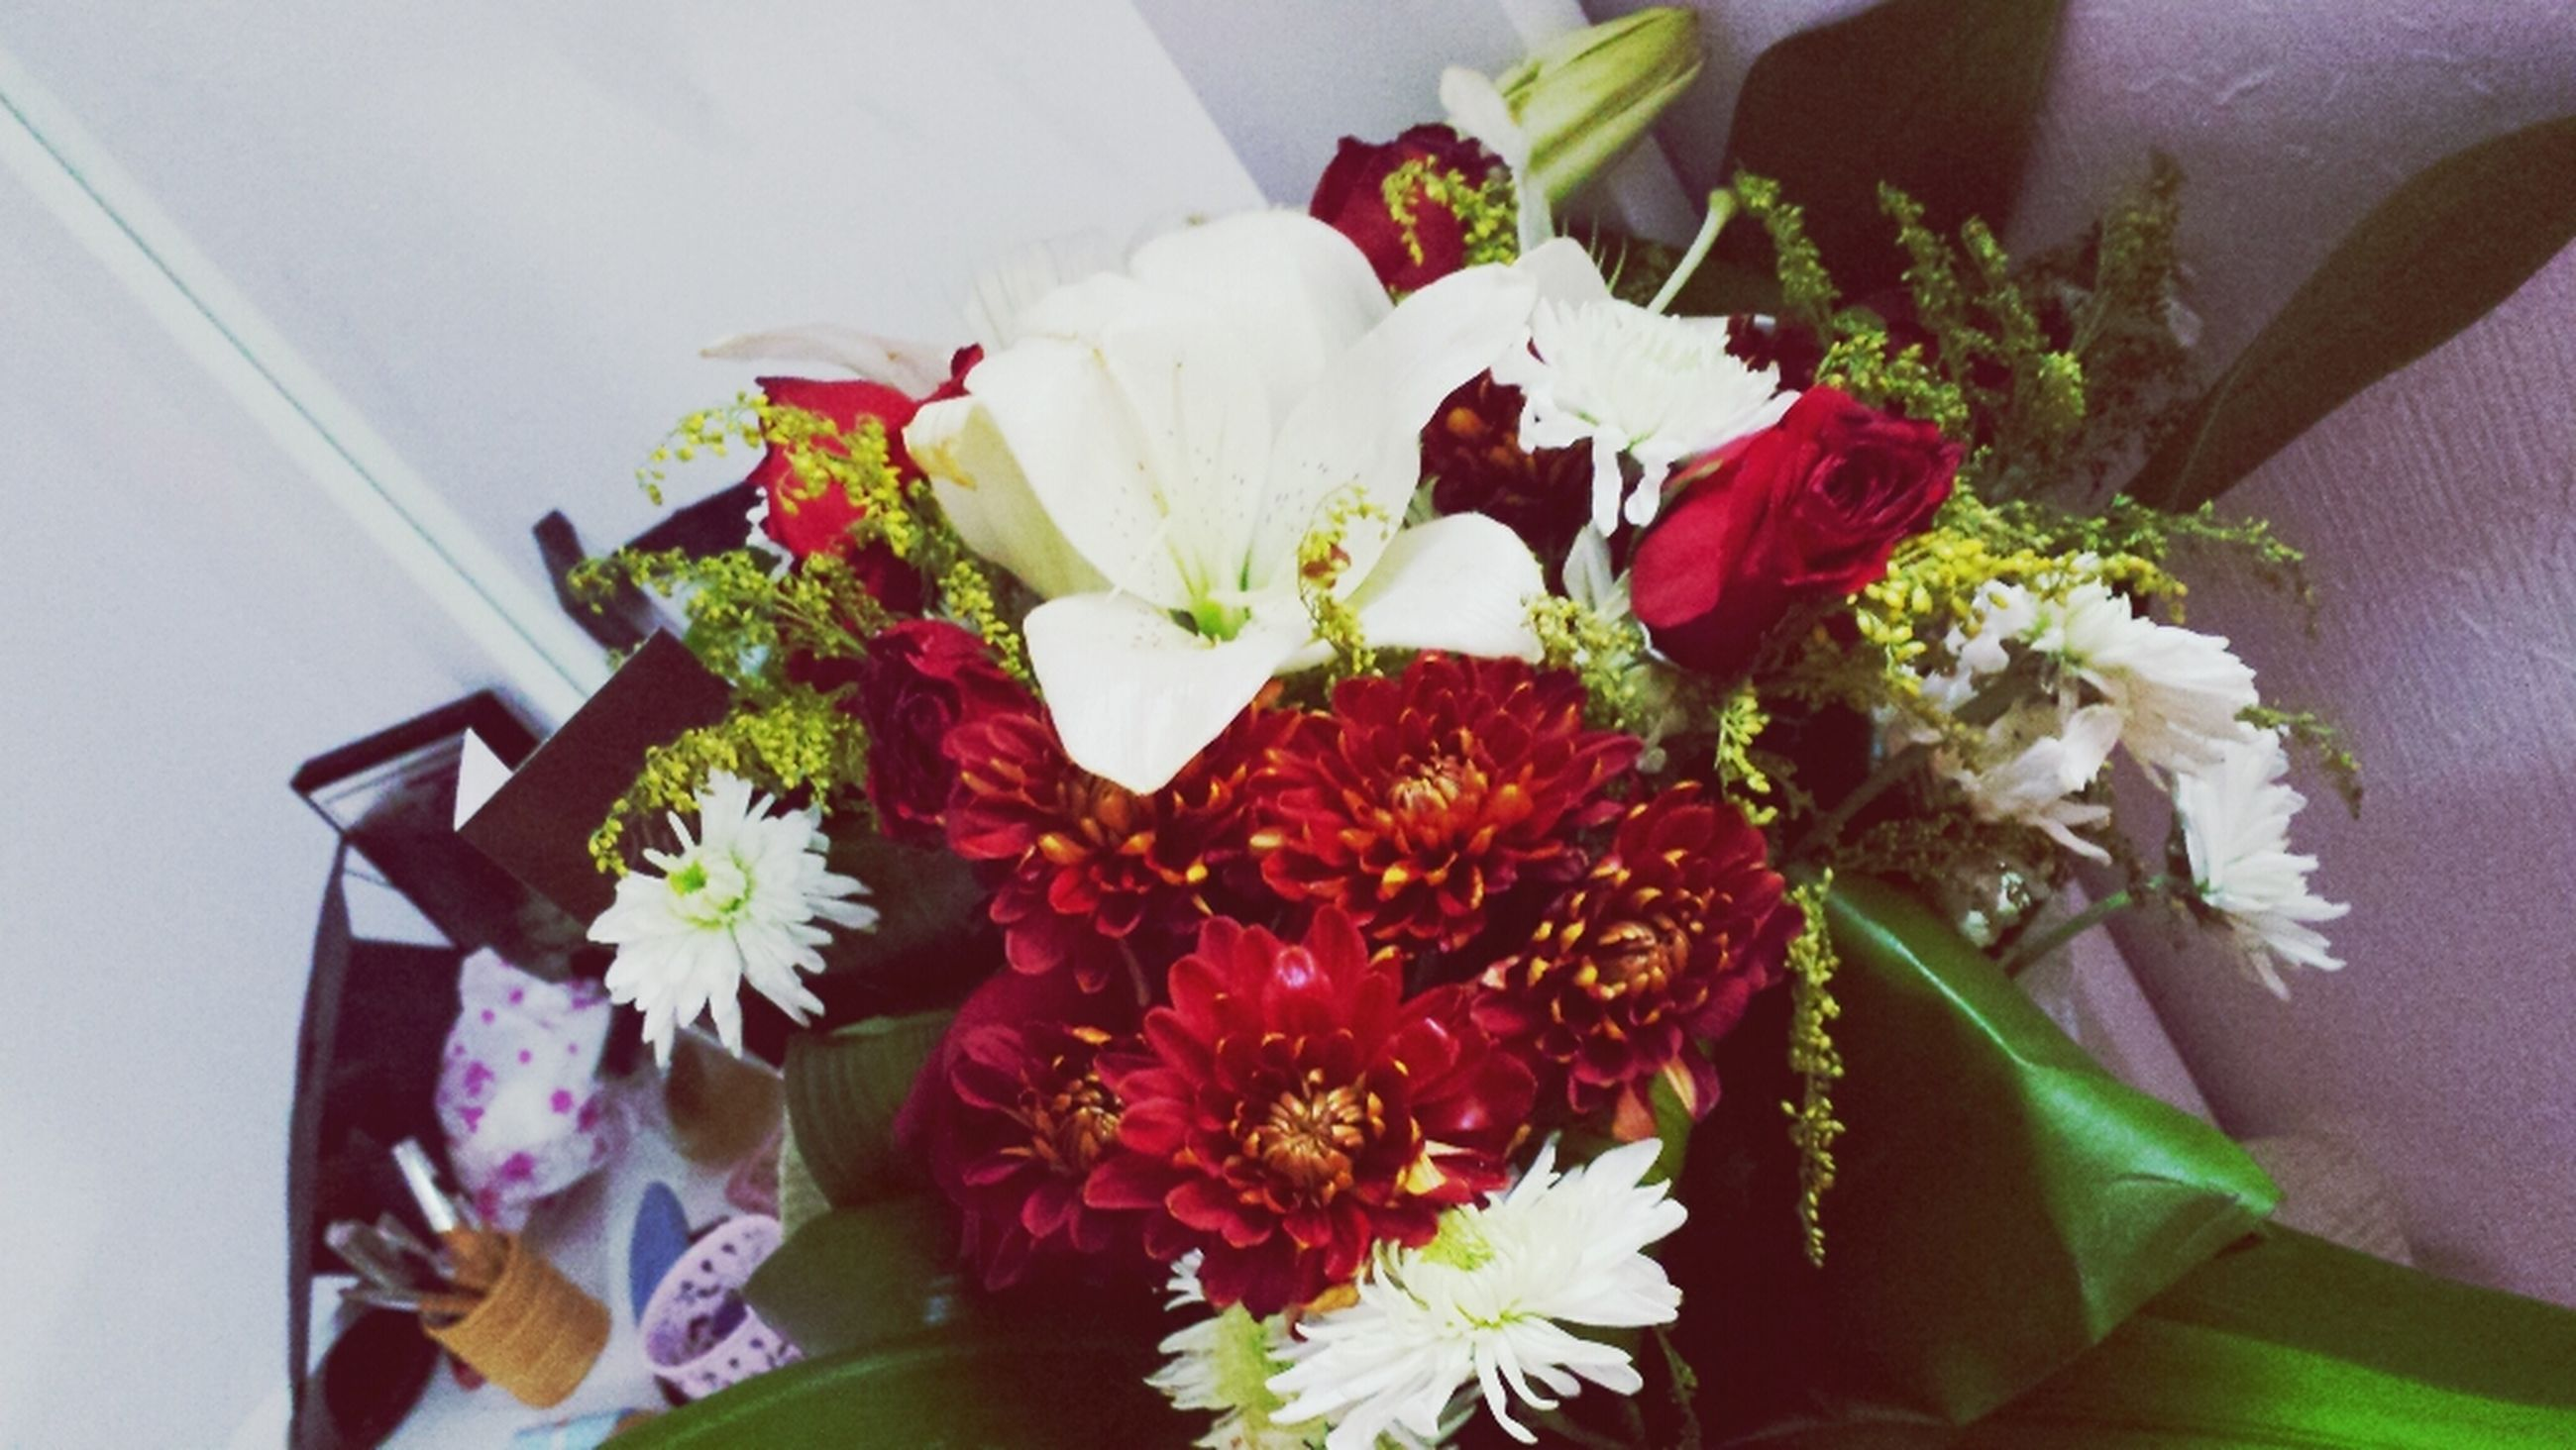 flower, indoors, freshness, petal, fragility, vase, flower head, bouquet, white color, beauty in nature, decoration, flower arrangement, growth, bunch of flowers, potted plant, home interior, plant, high angle view, close-up, nature